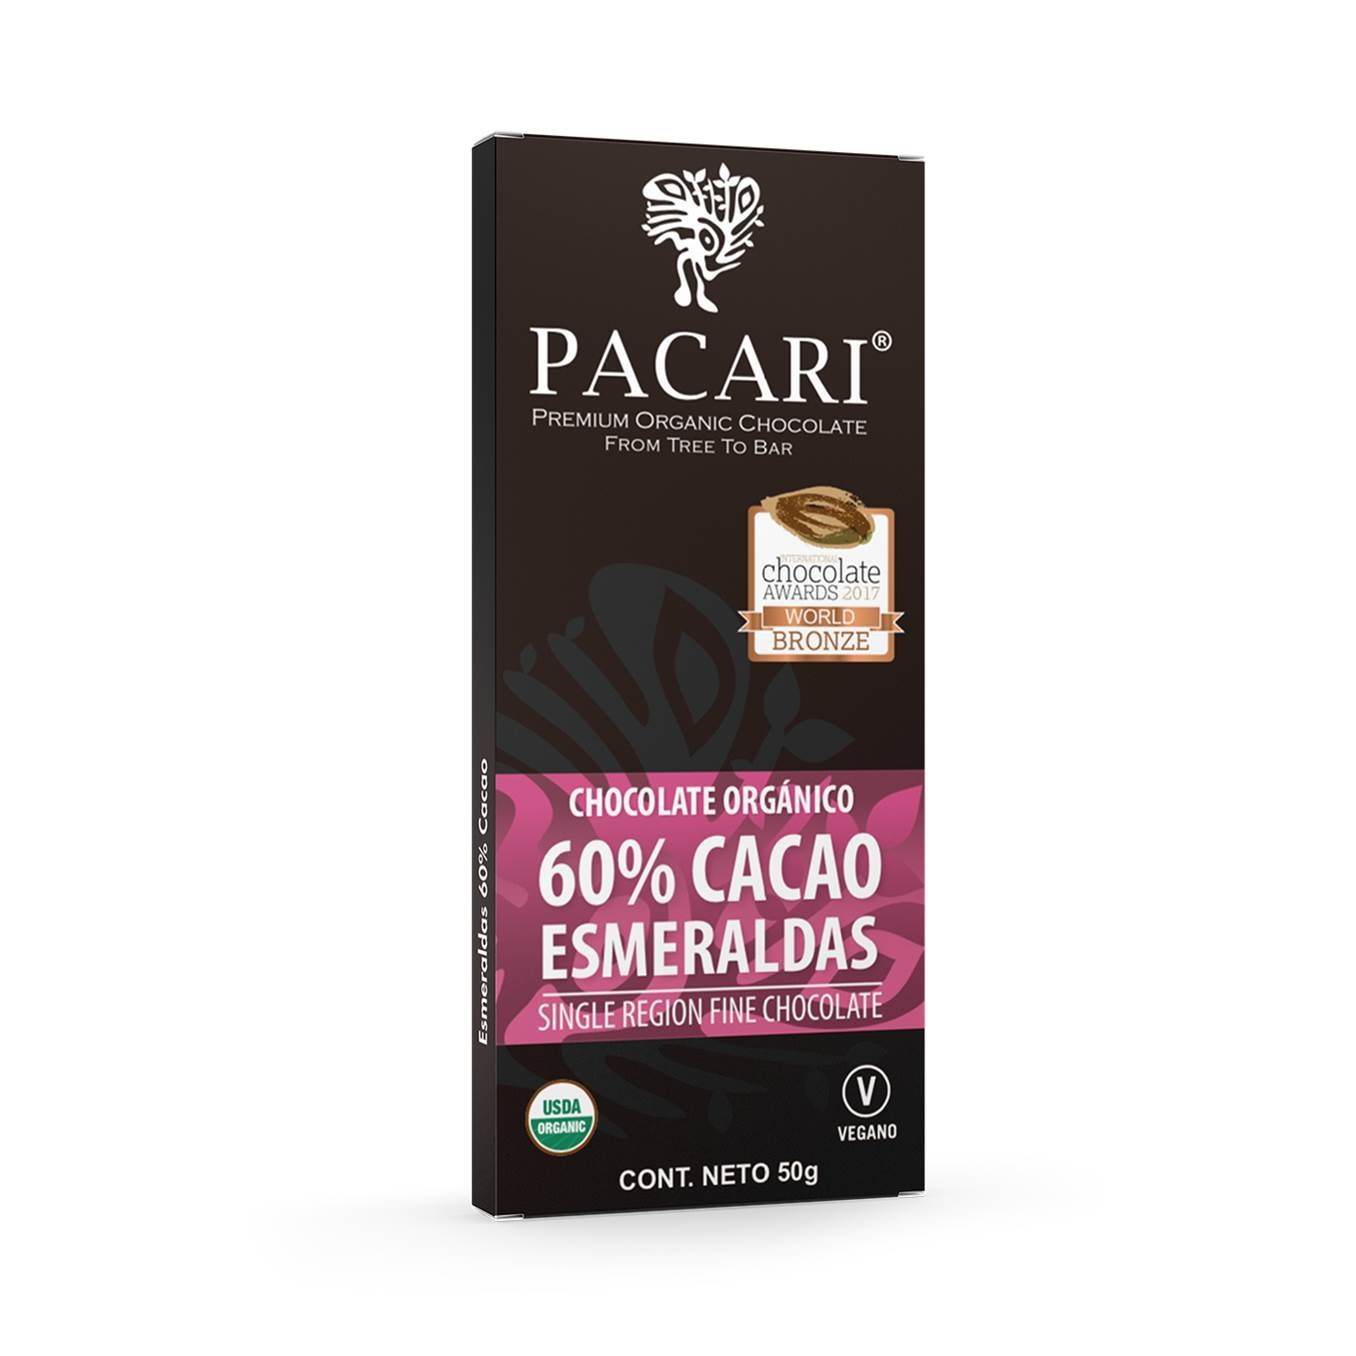 Chocolate barra 60% cacao Esmeraldas